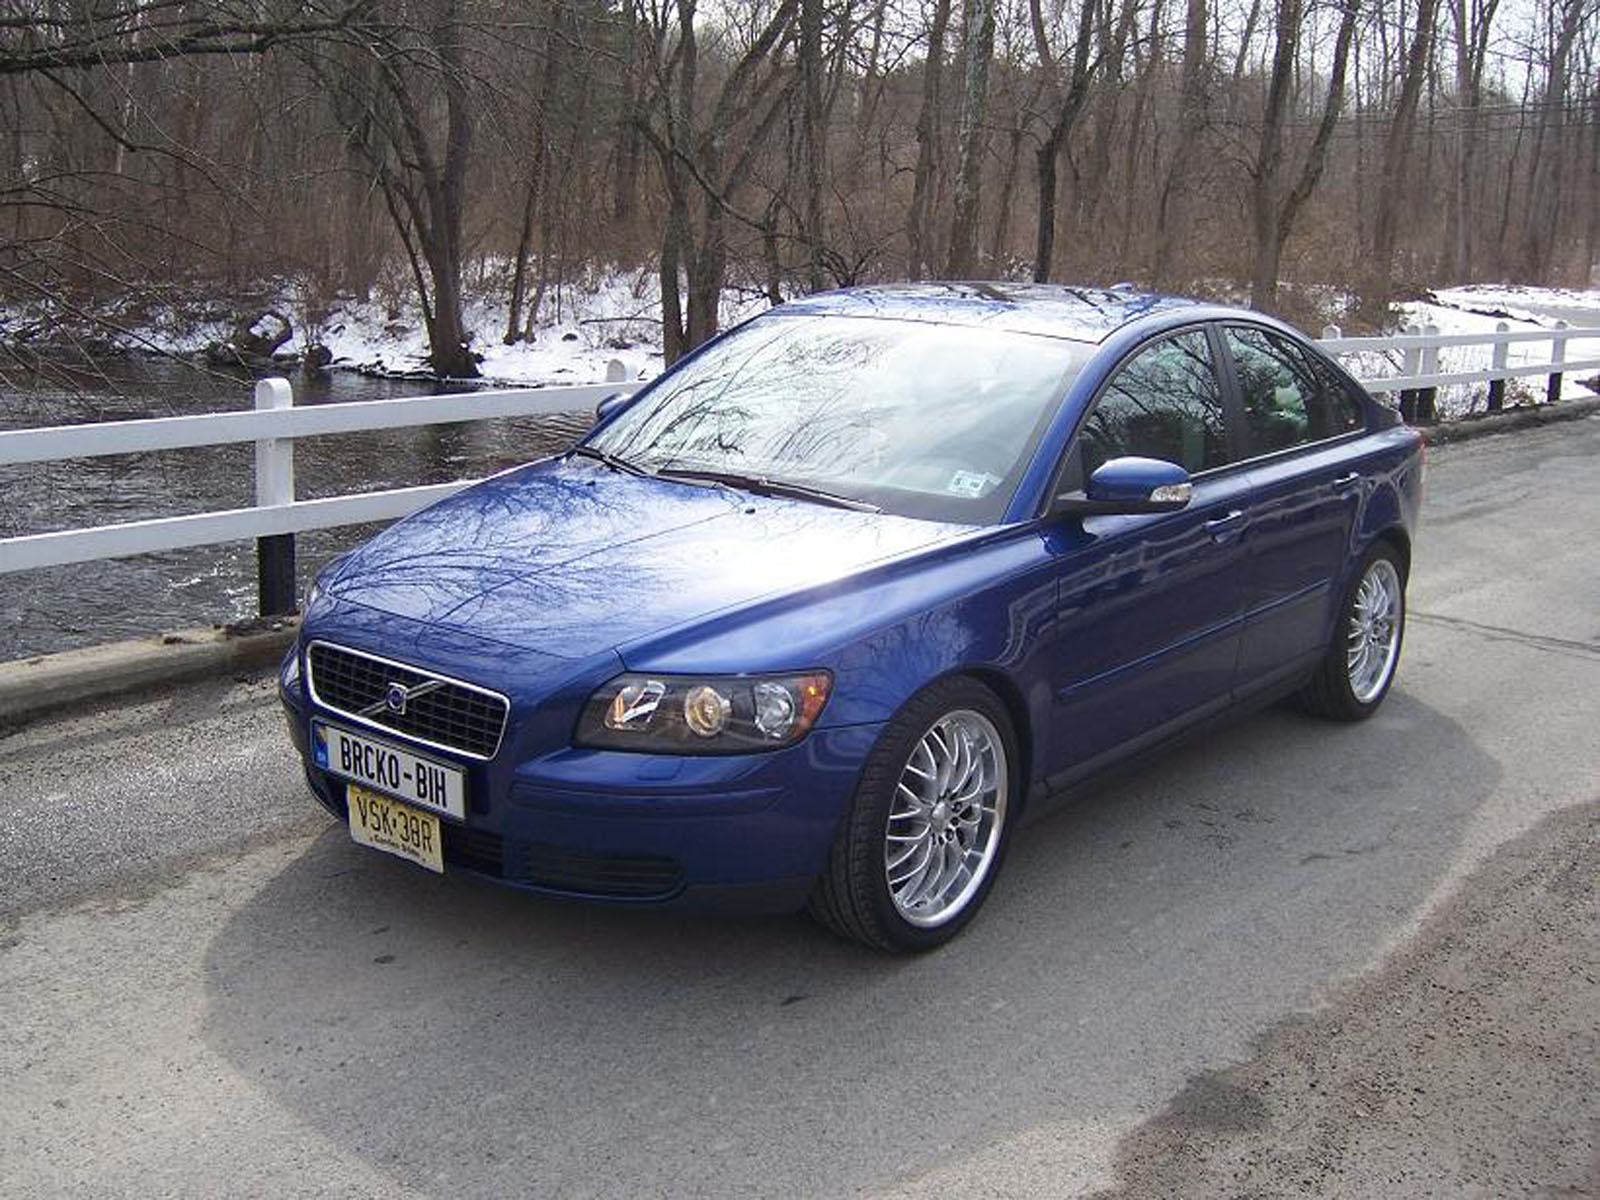 2007 volvo s40 for sale hackettstown new jersey. Black Bedroom Furniture Sets. Home Design Ideas